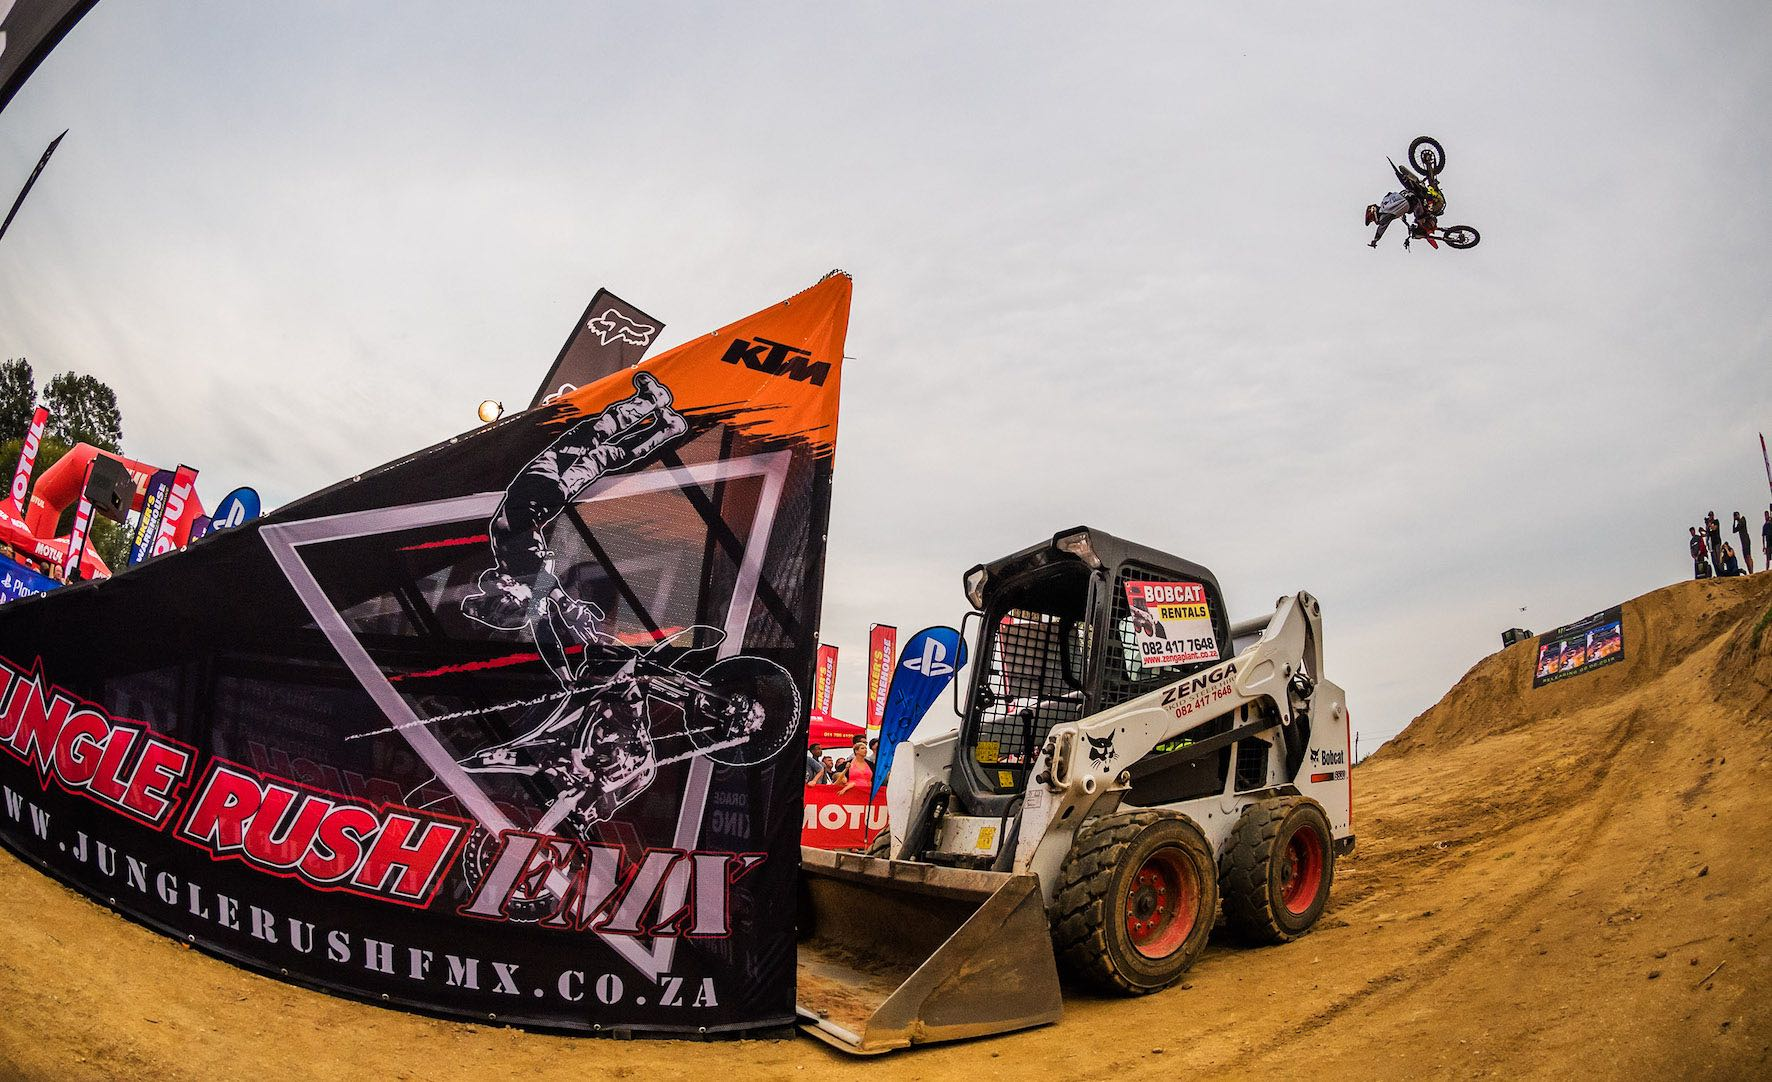 Event review from the King of the Whip 2019 freestyle motocross best whip event